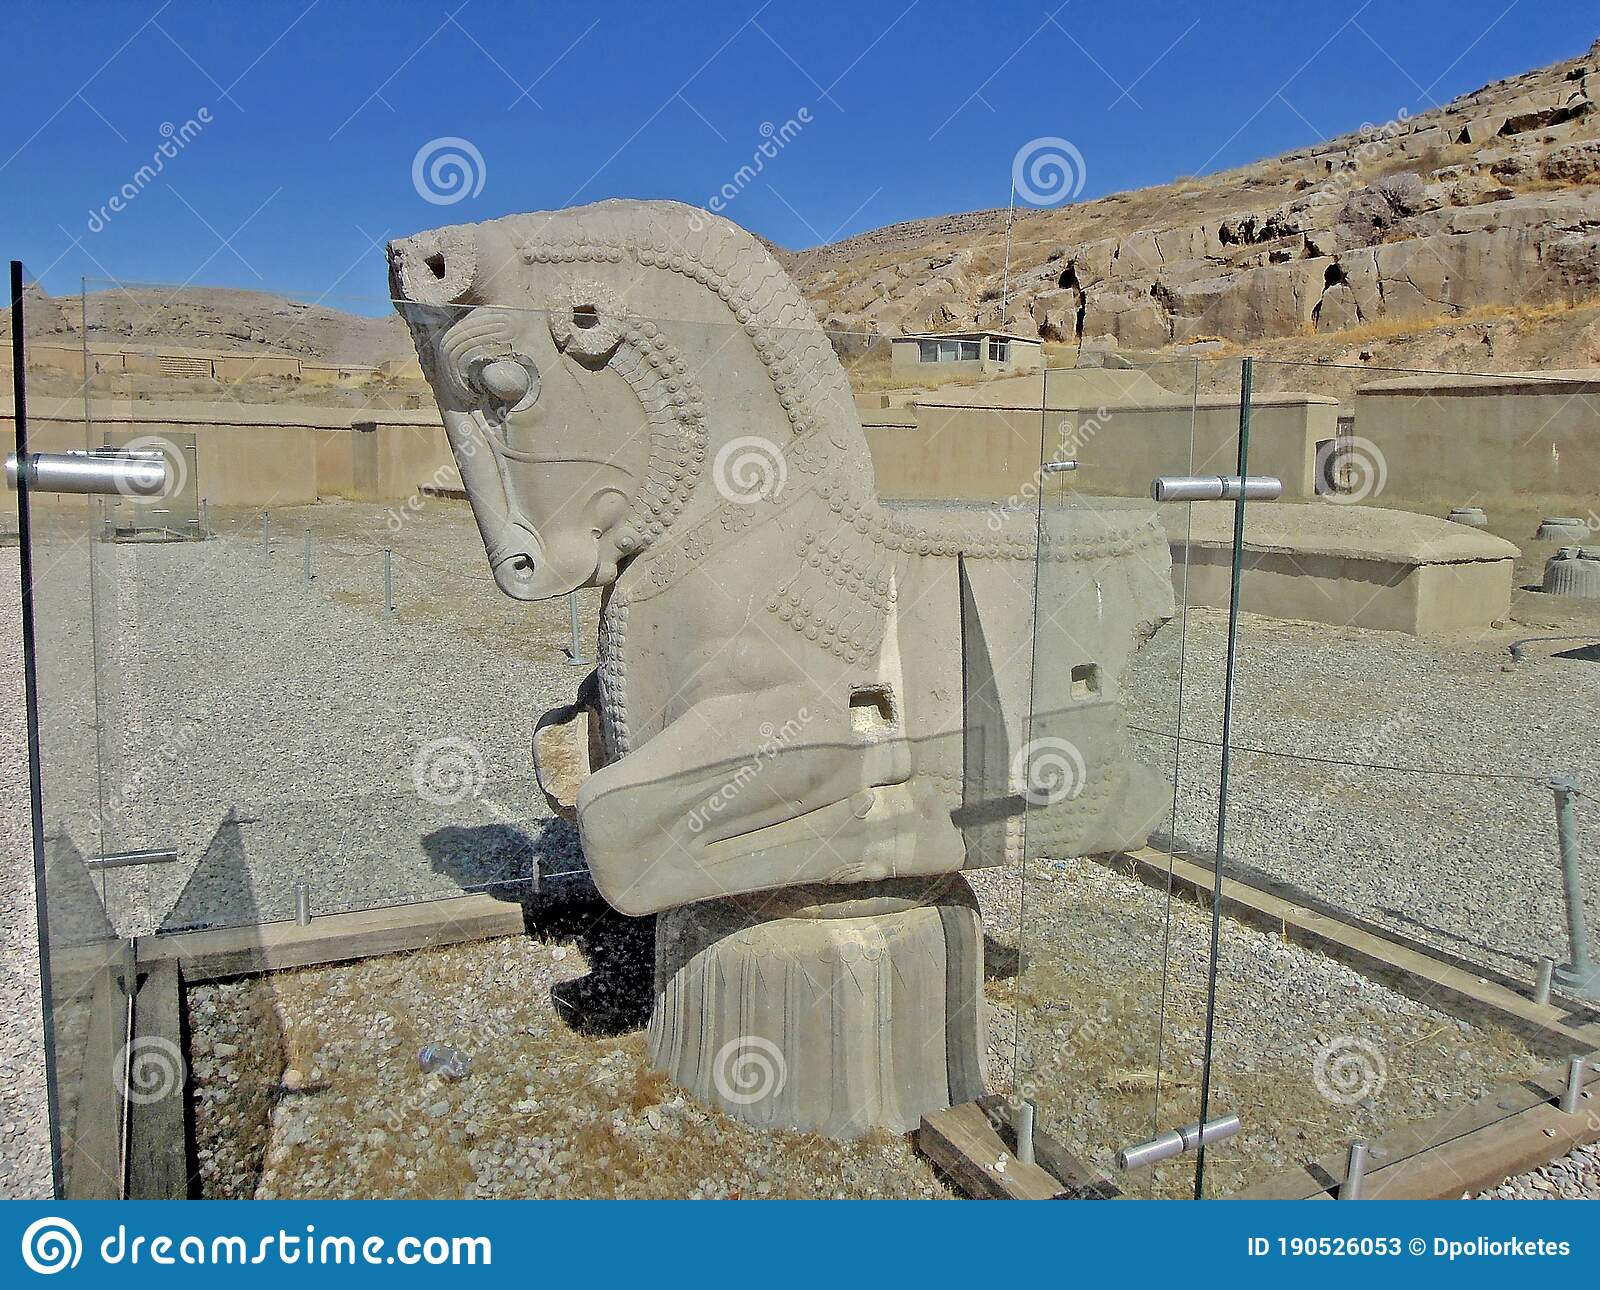 Remains Of Ancient Capital Of Persian Column In Form Of Head Of Bull Persepolis Iran Editorial Stock Photo Image Of Architecture Decoration 190526053